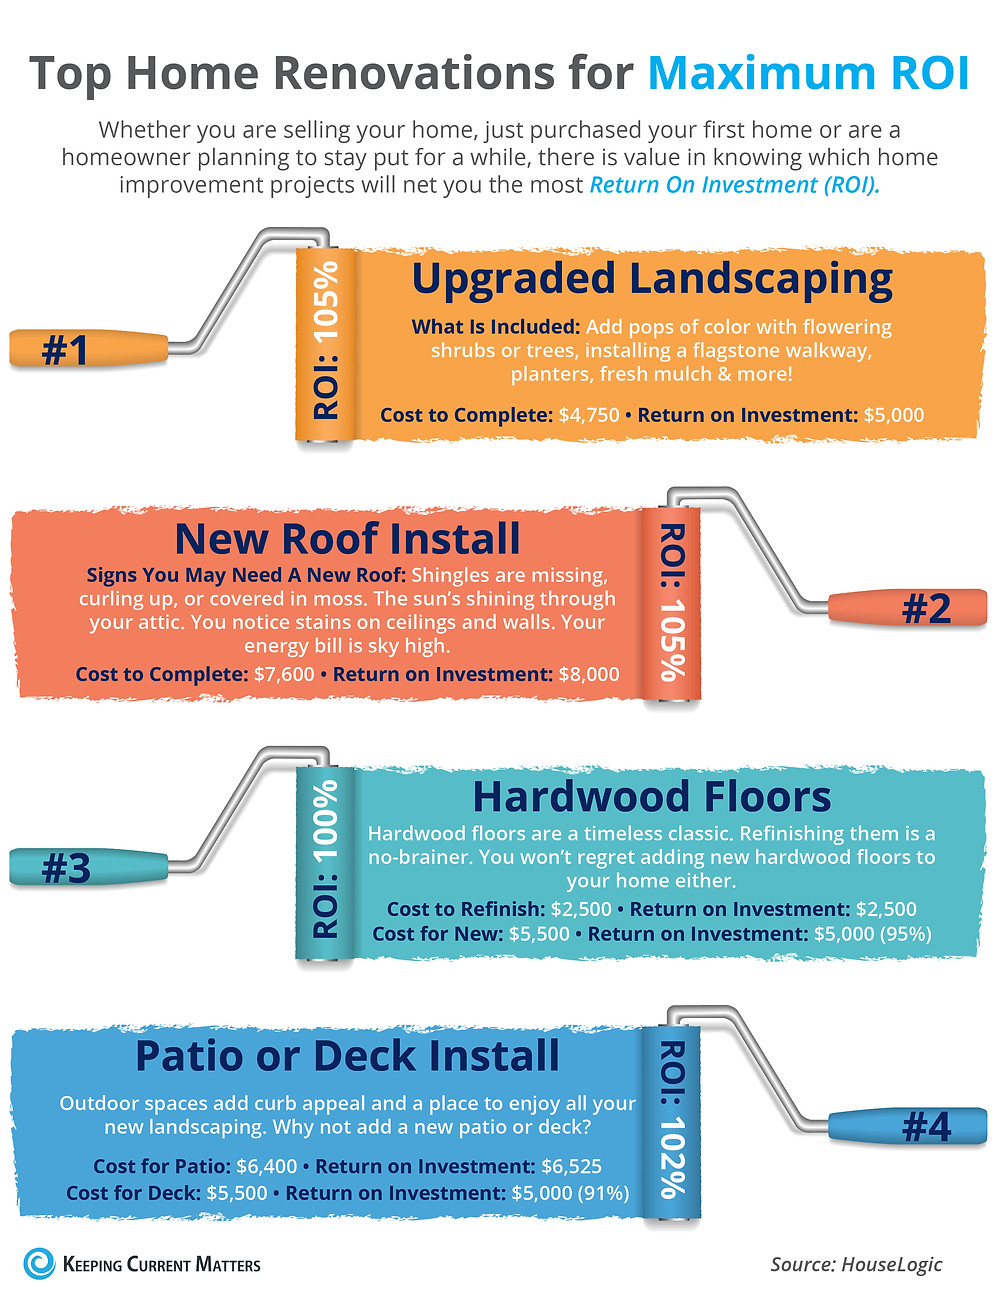 Top 4 Home Renovations for Maximum ROI [INFOGRAPHIC] | Keeping Current Matters